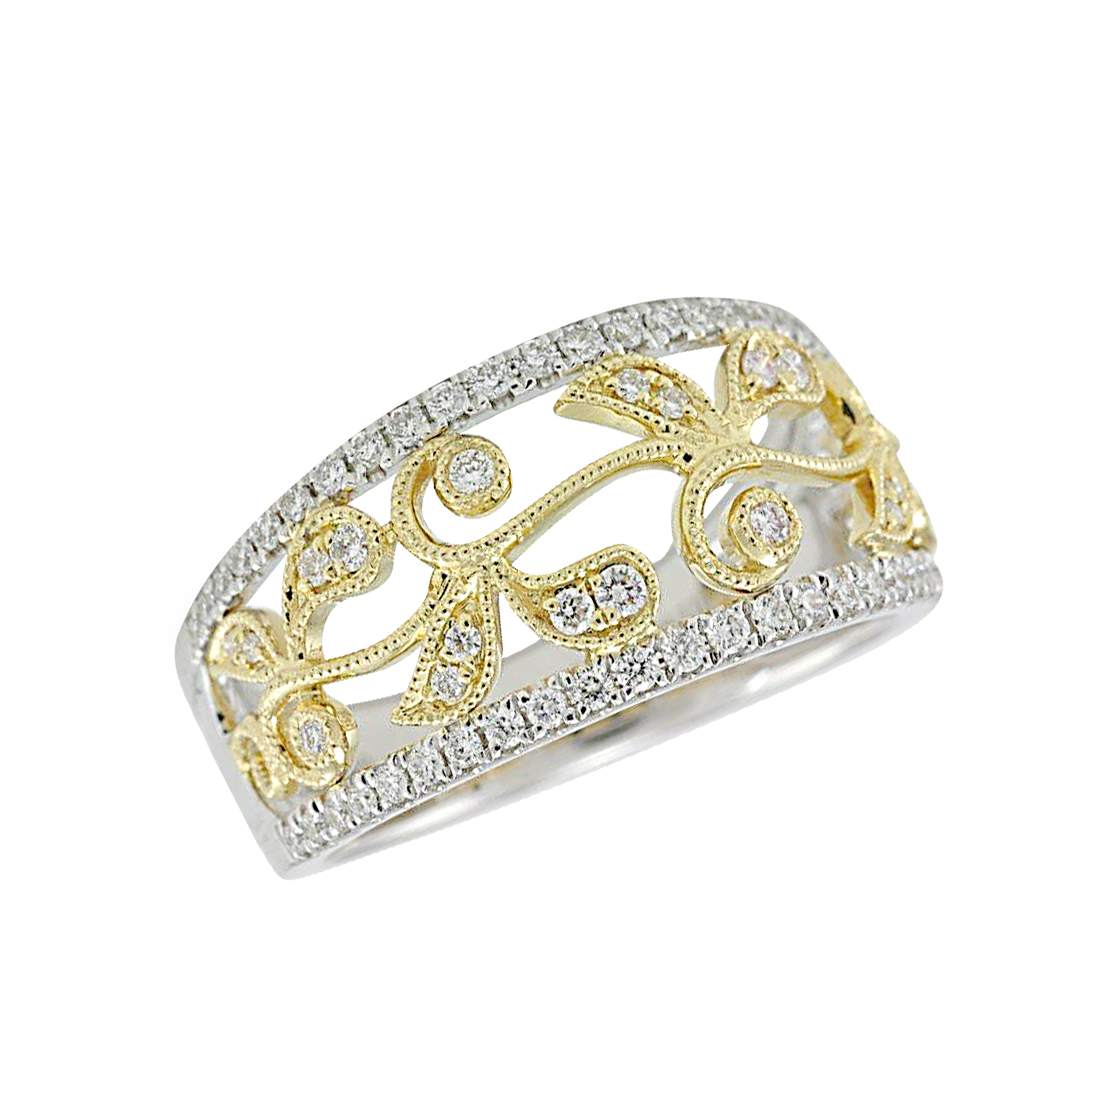 Vintage Style Gold and Diamond Ring by S. Kashi